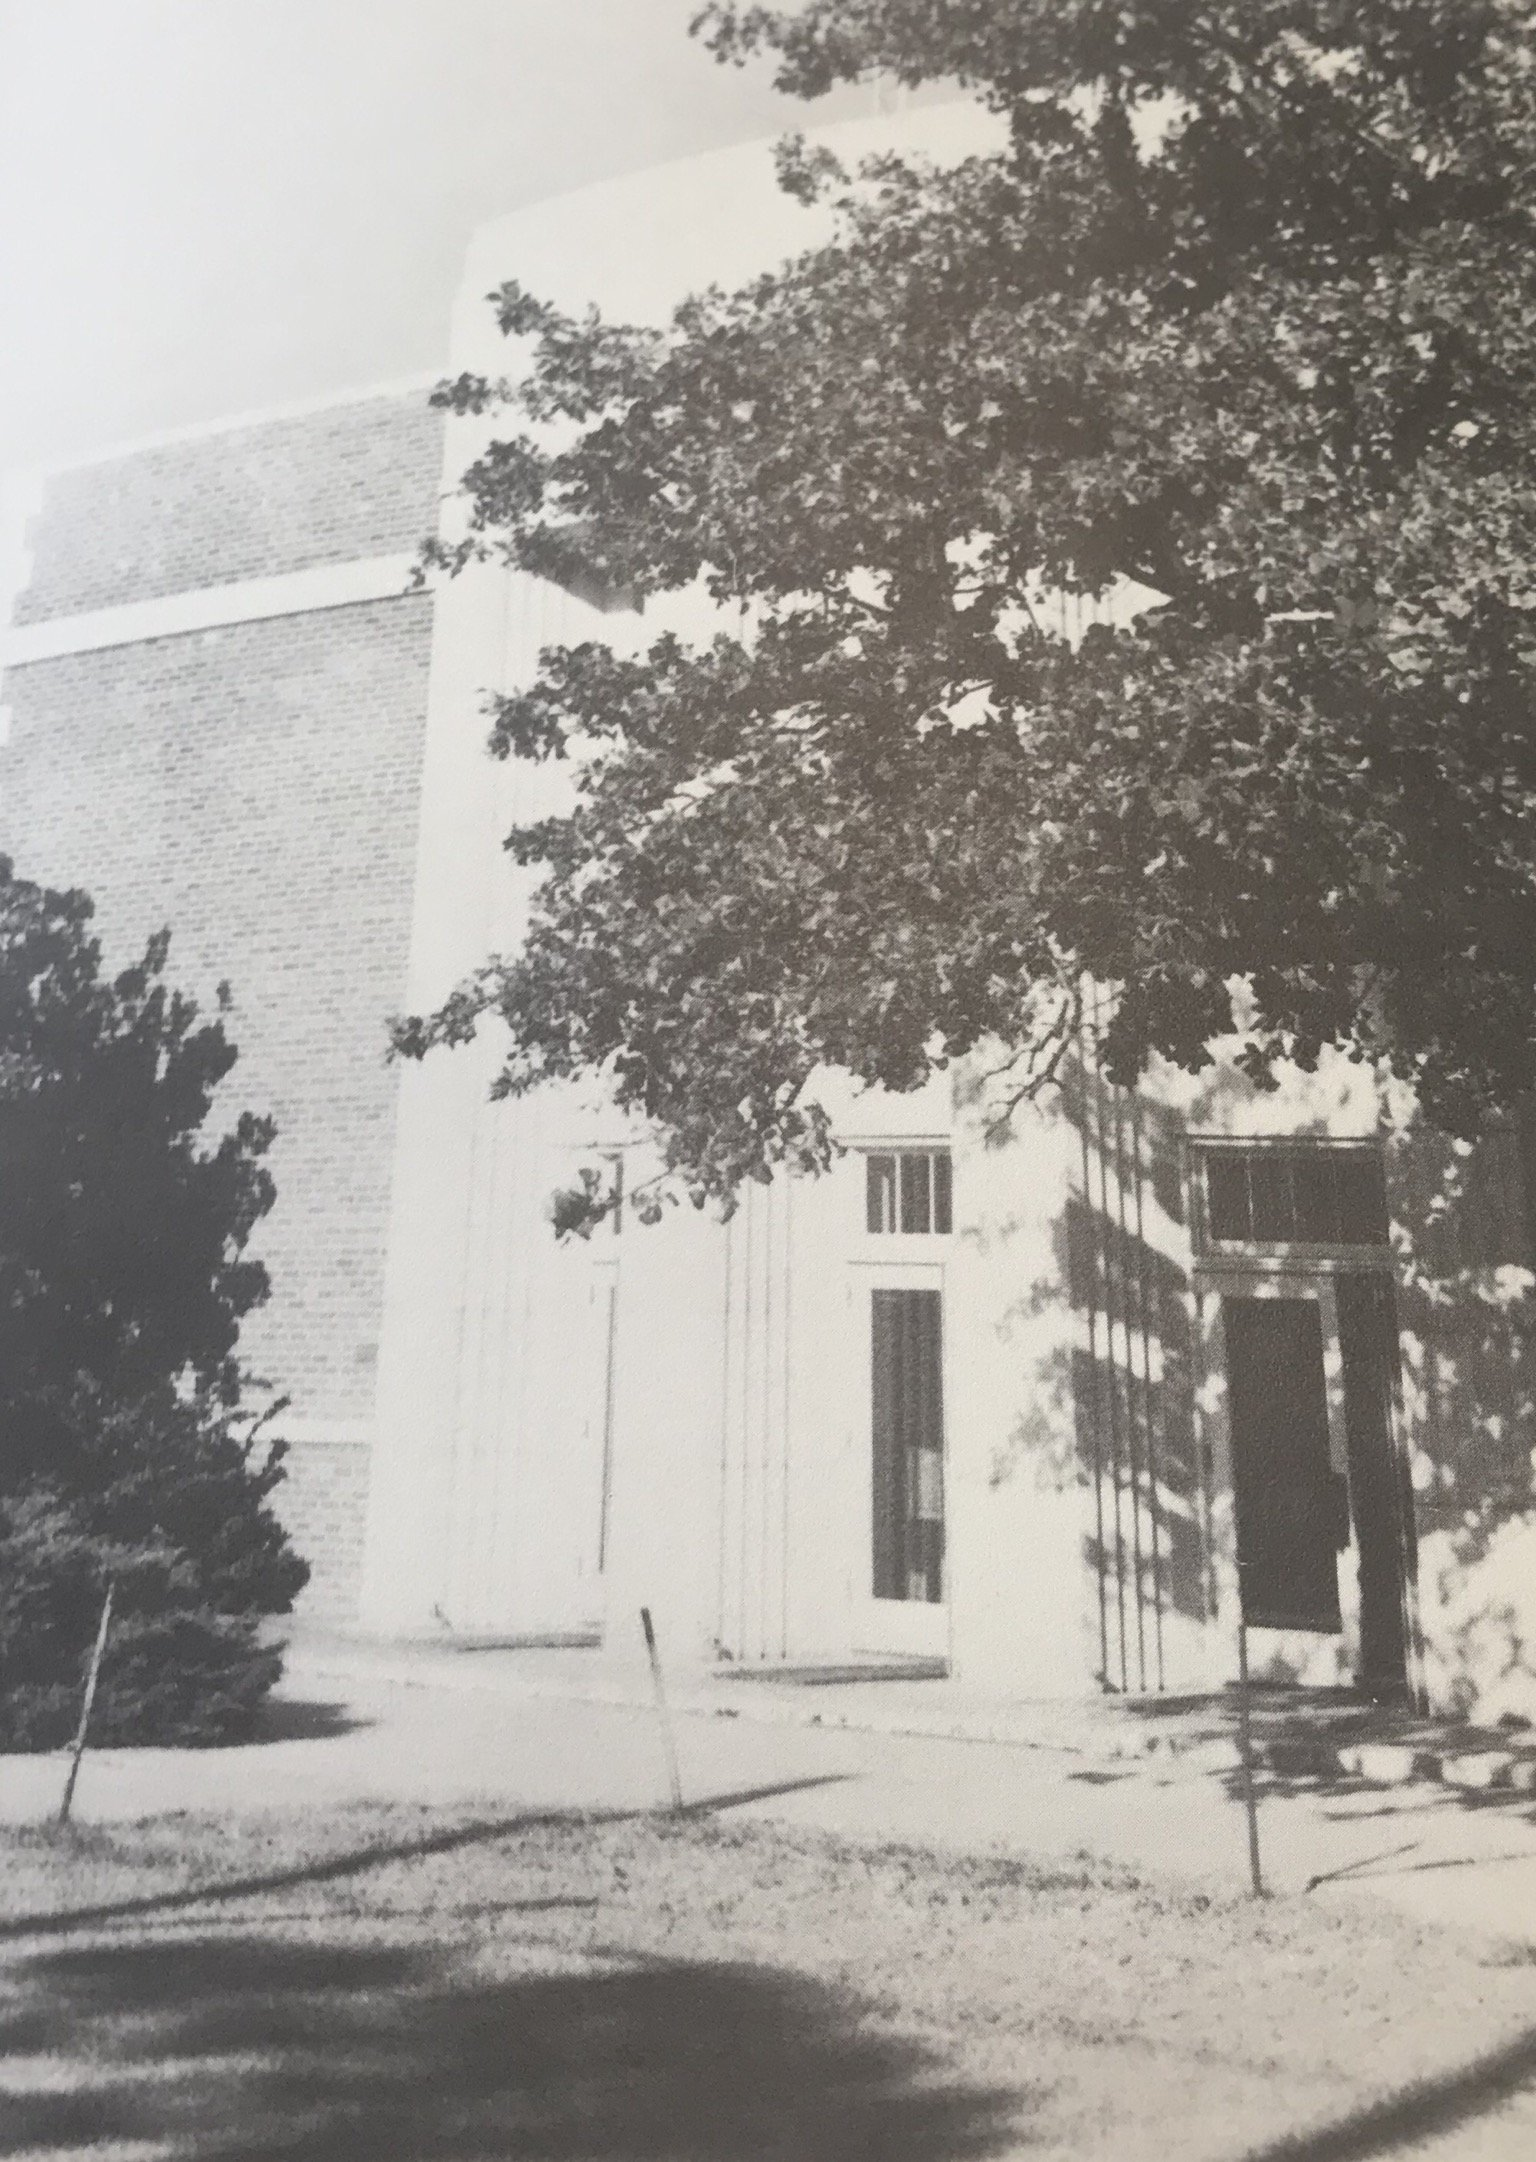 Student Union in 1947